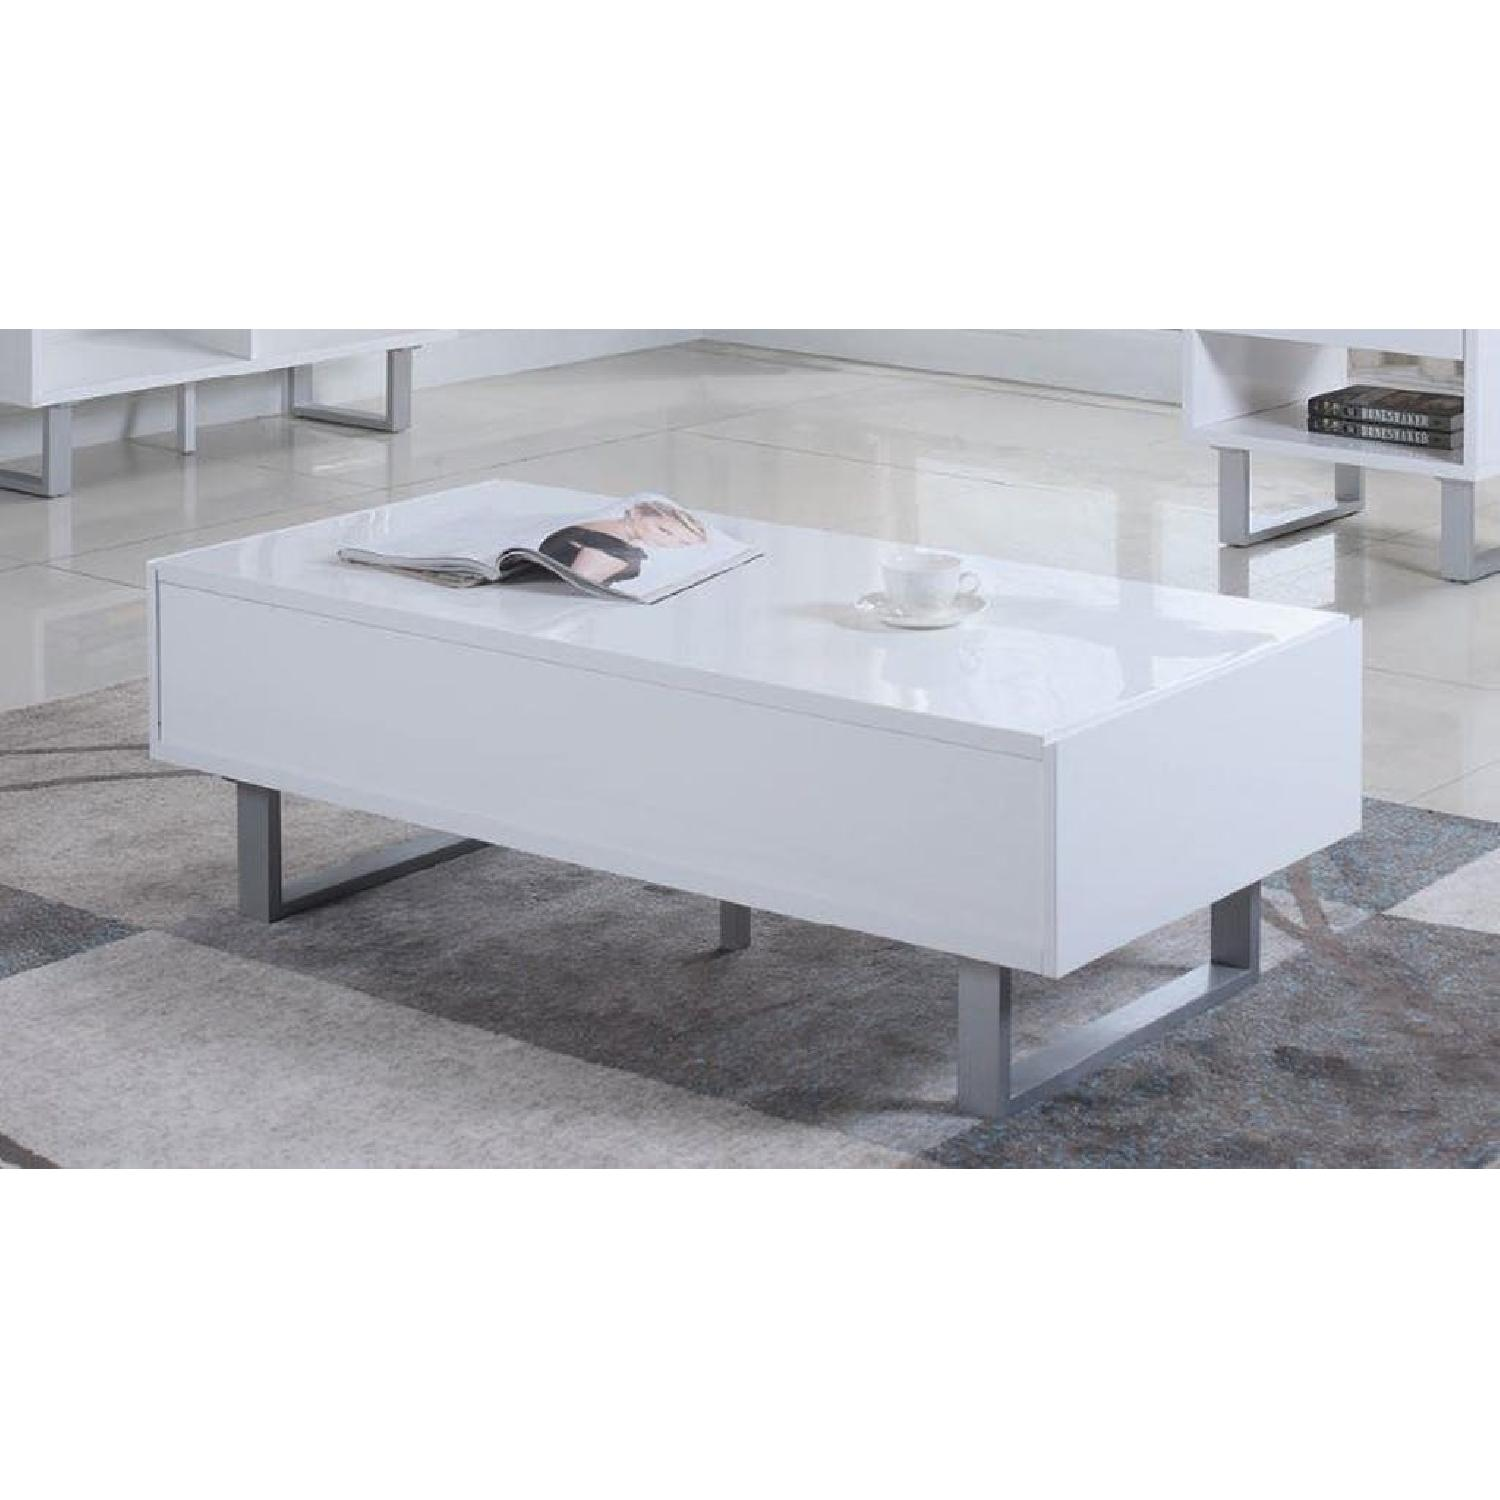 Glossy White Coffee Table w/ 2 Side Drawers - image-1